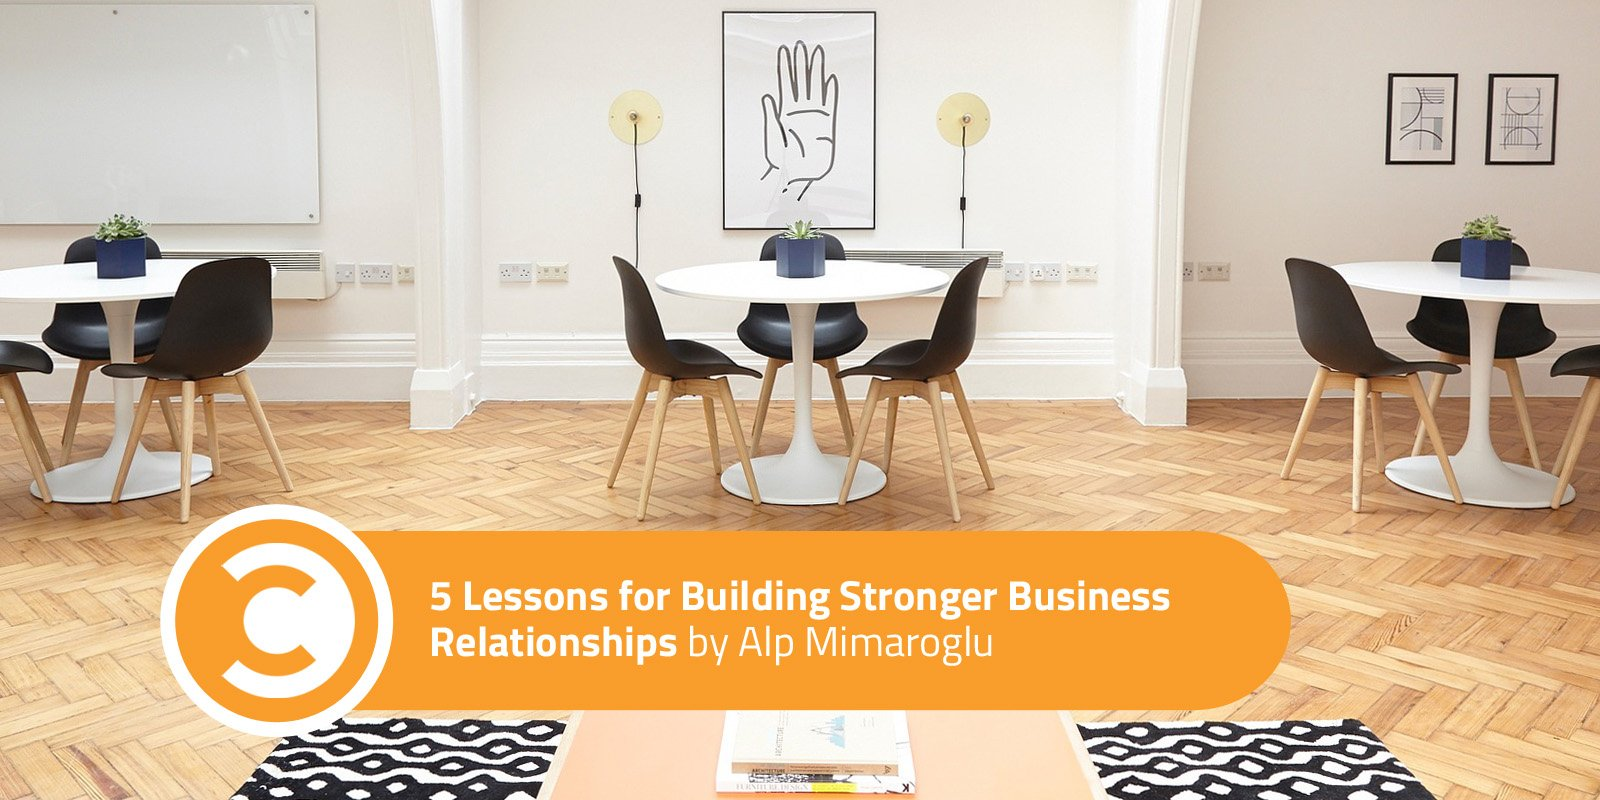 5 Lessons for Building Stronger Business Relationships